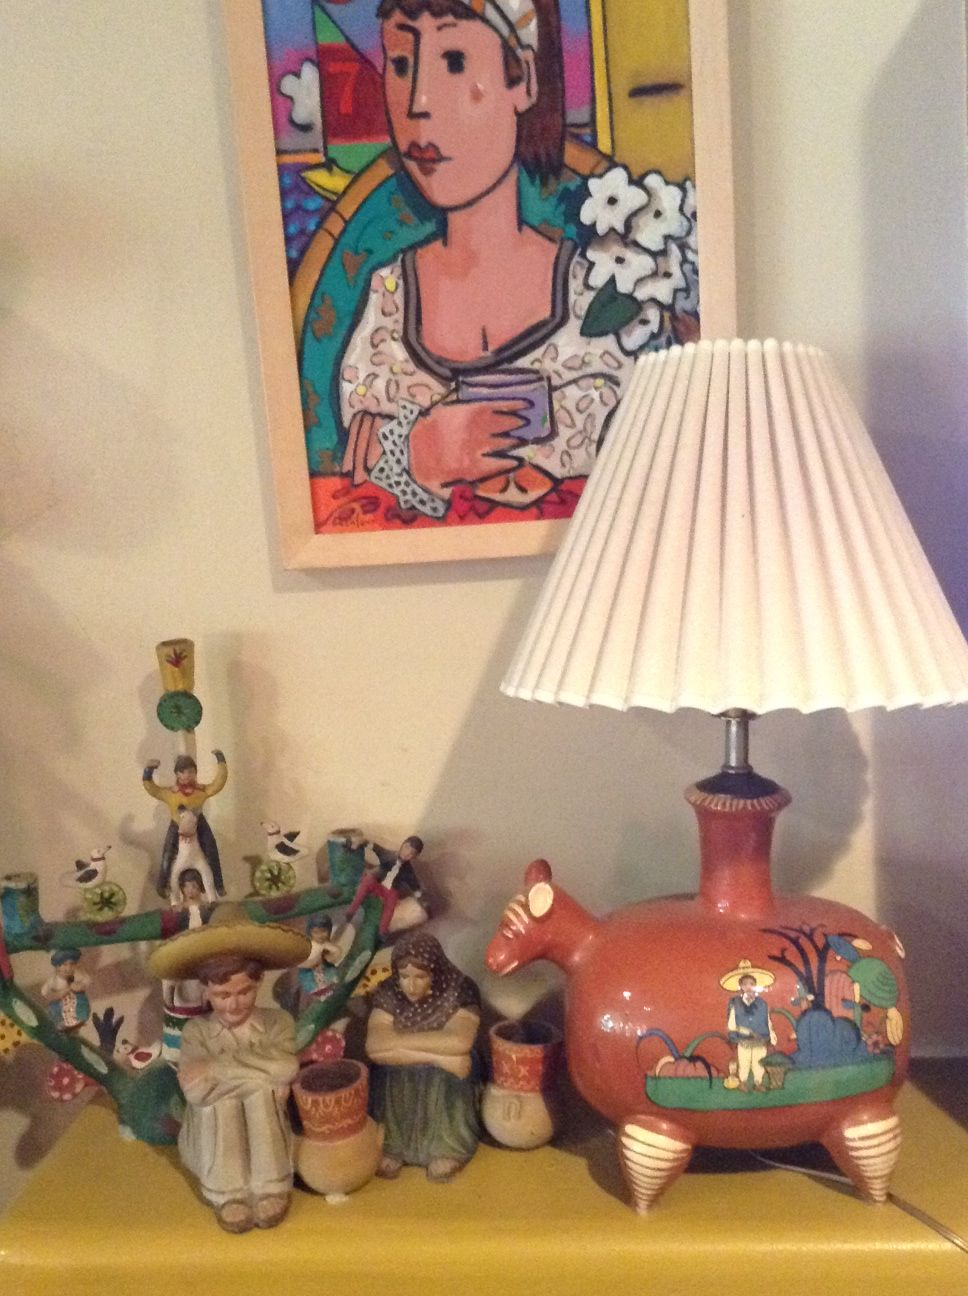 Pin By Hdi 19 On Southwest House With Images: ;D --- ️ Awesome TLAQUEPAQUE Lamp/figurines....still The Living Room!